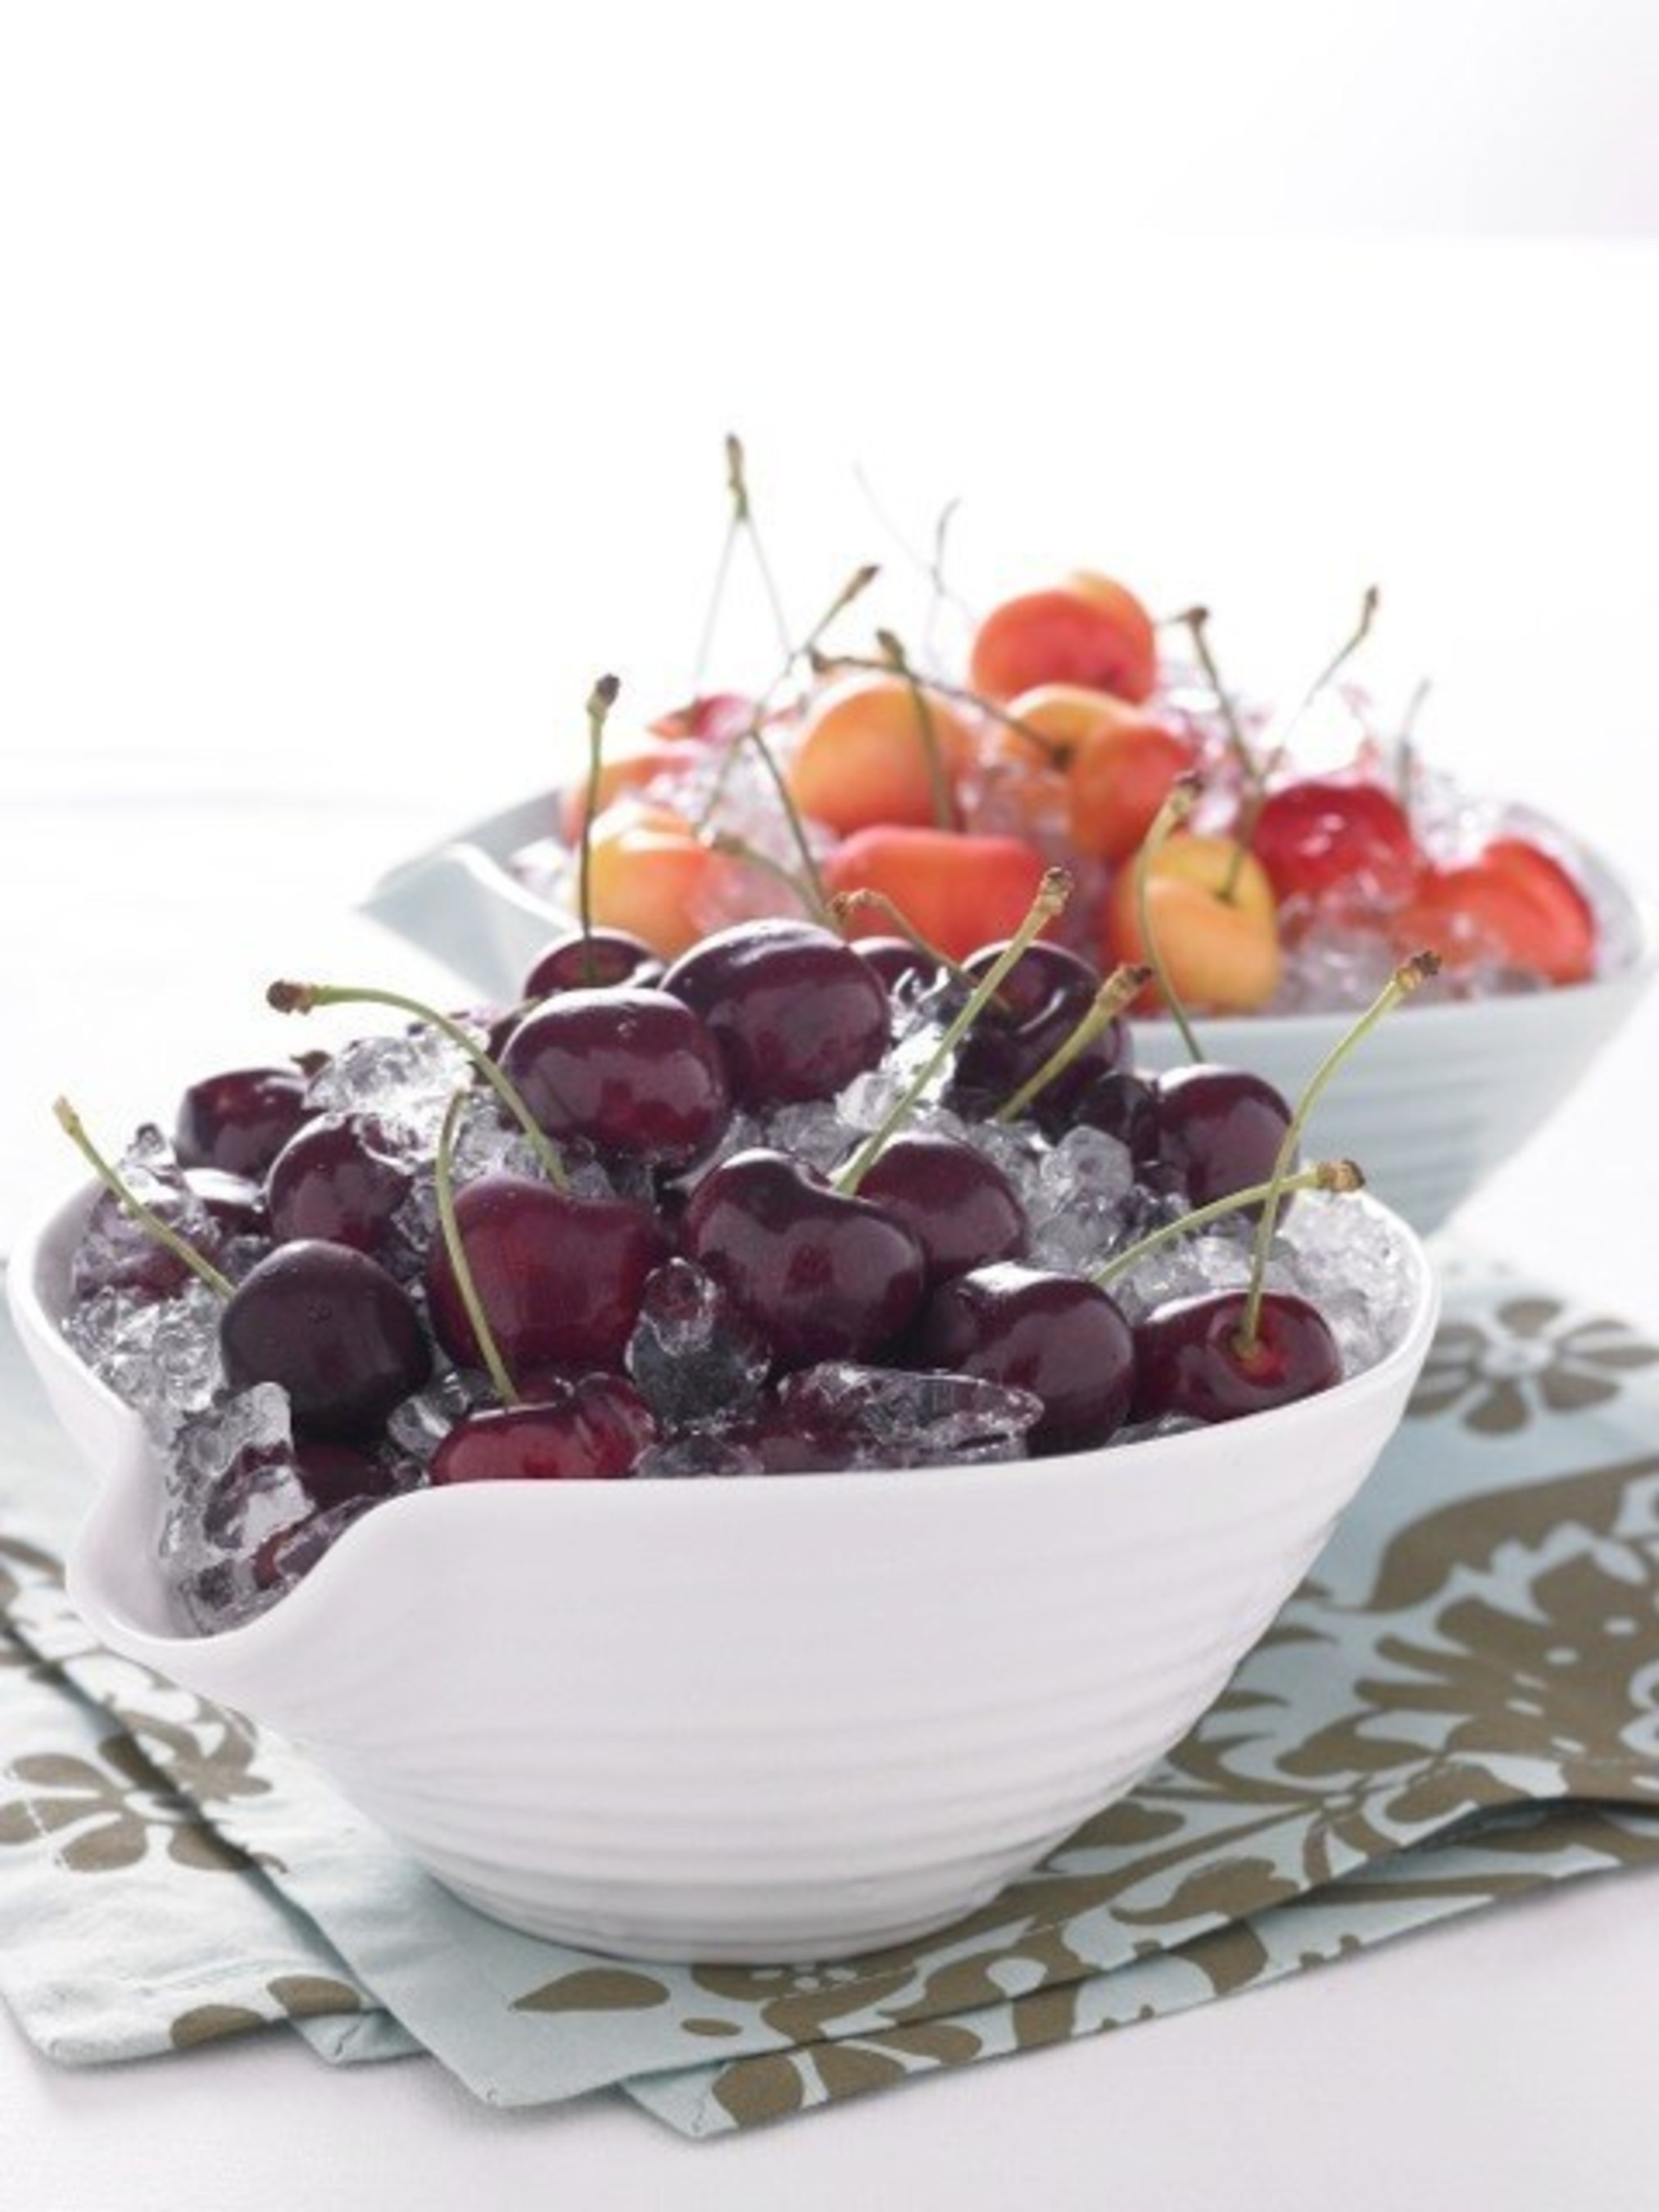 Northwest Cherries are a Sweet Healthy Treat